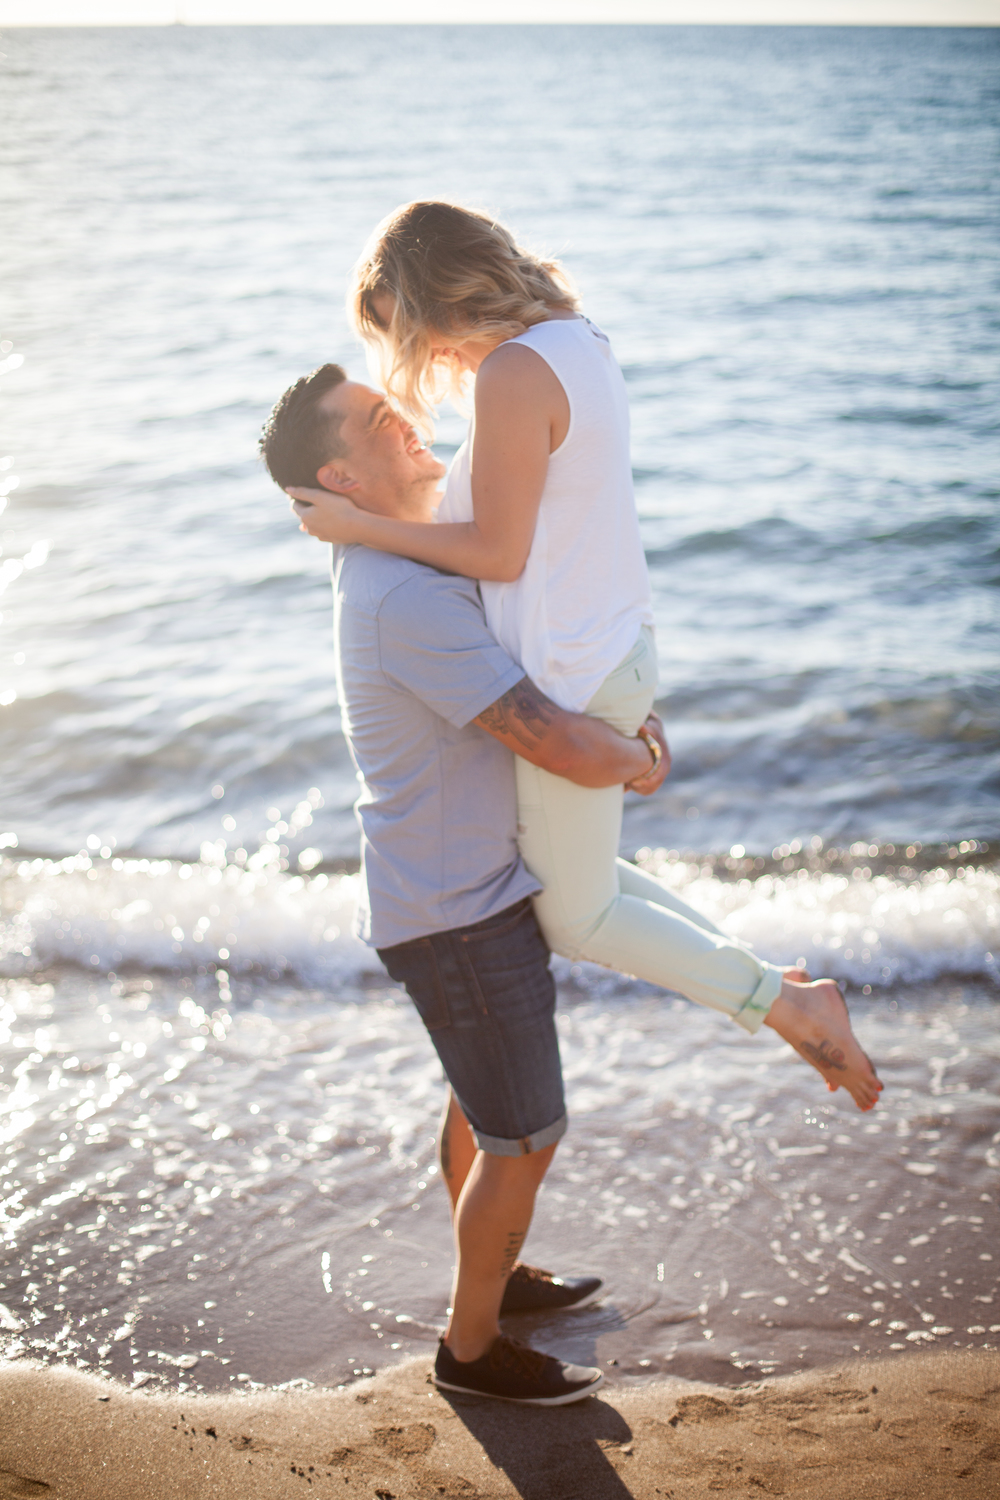 big island hawaii engagement photography 20150529181249-1-2.jpg